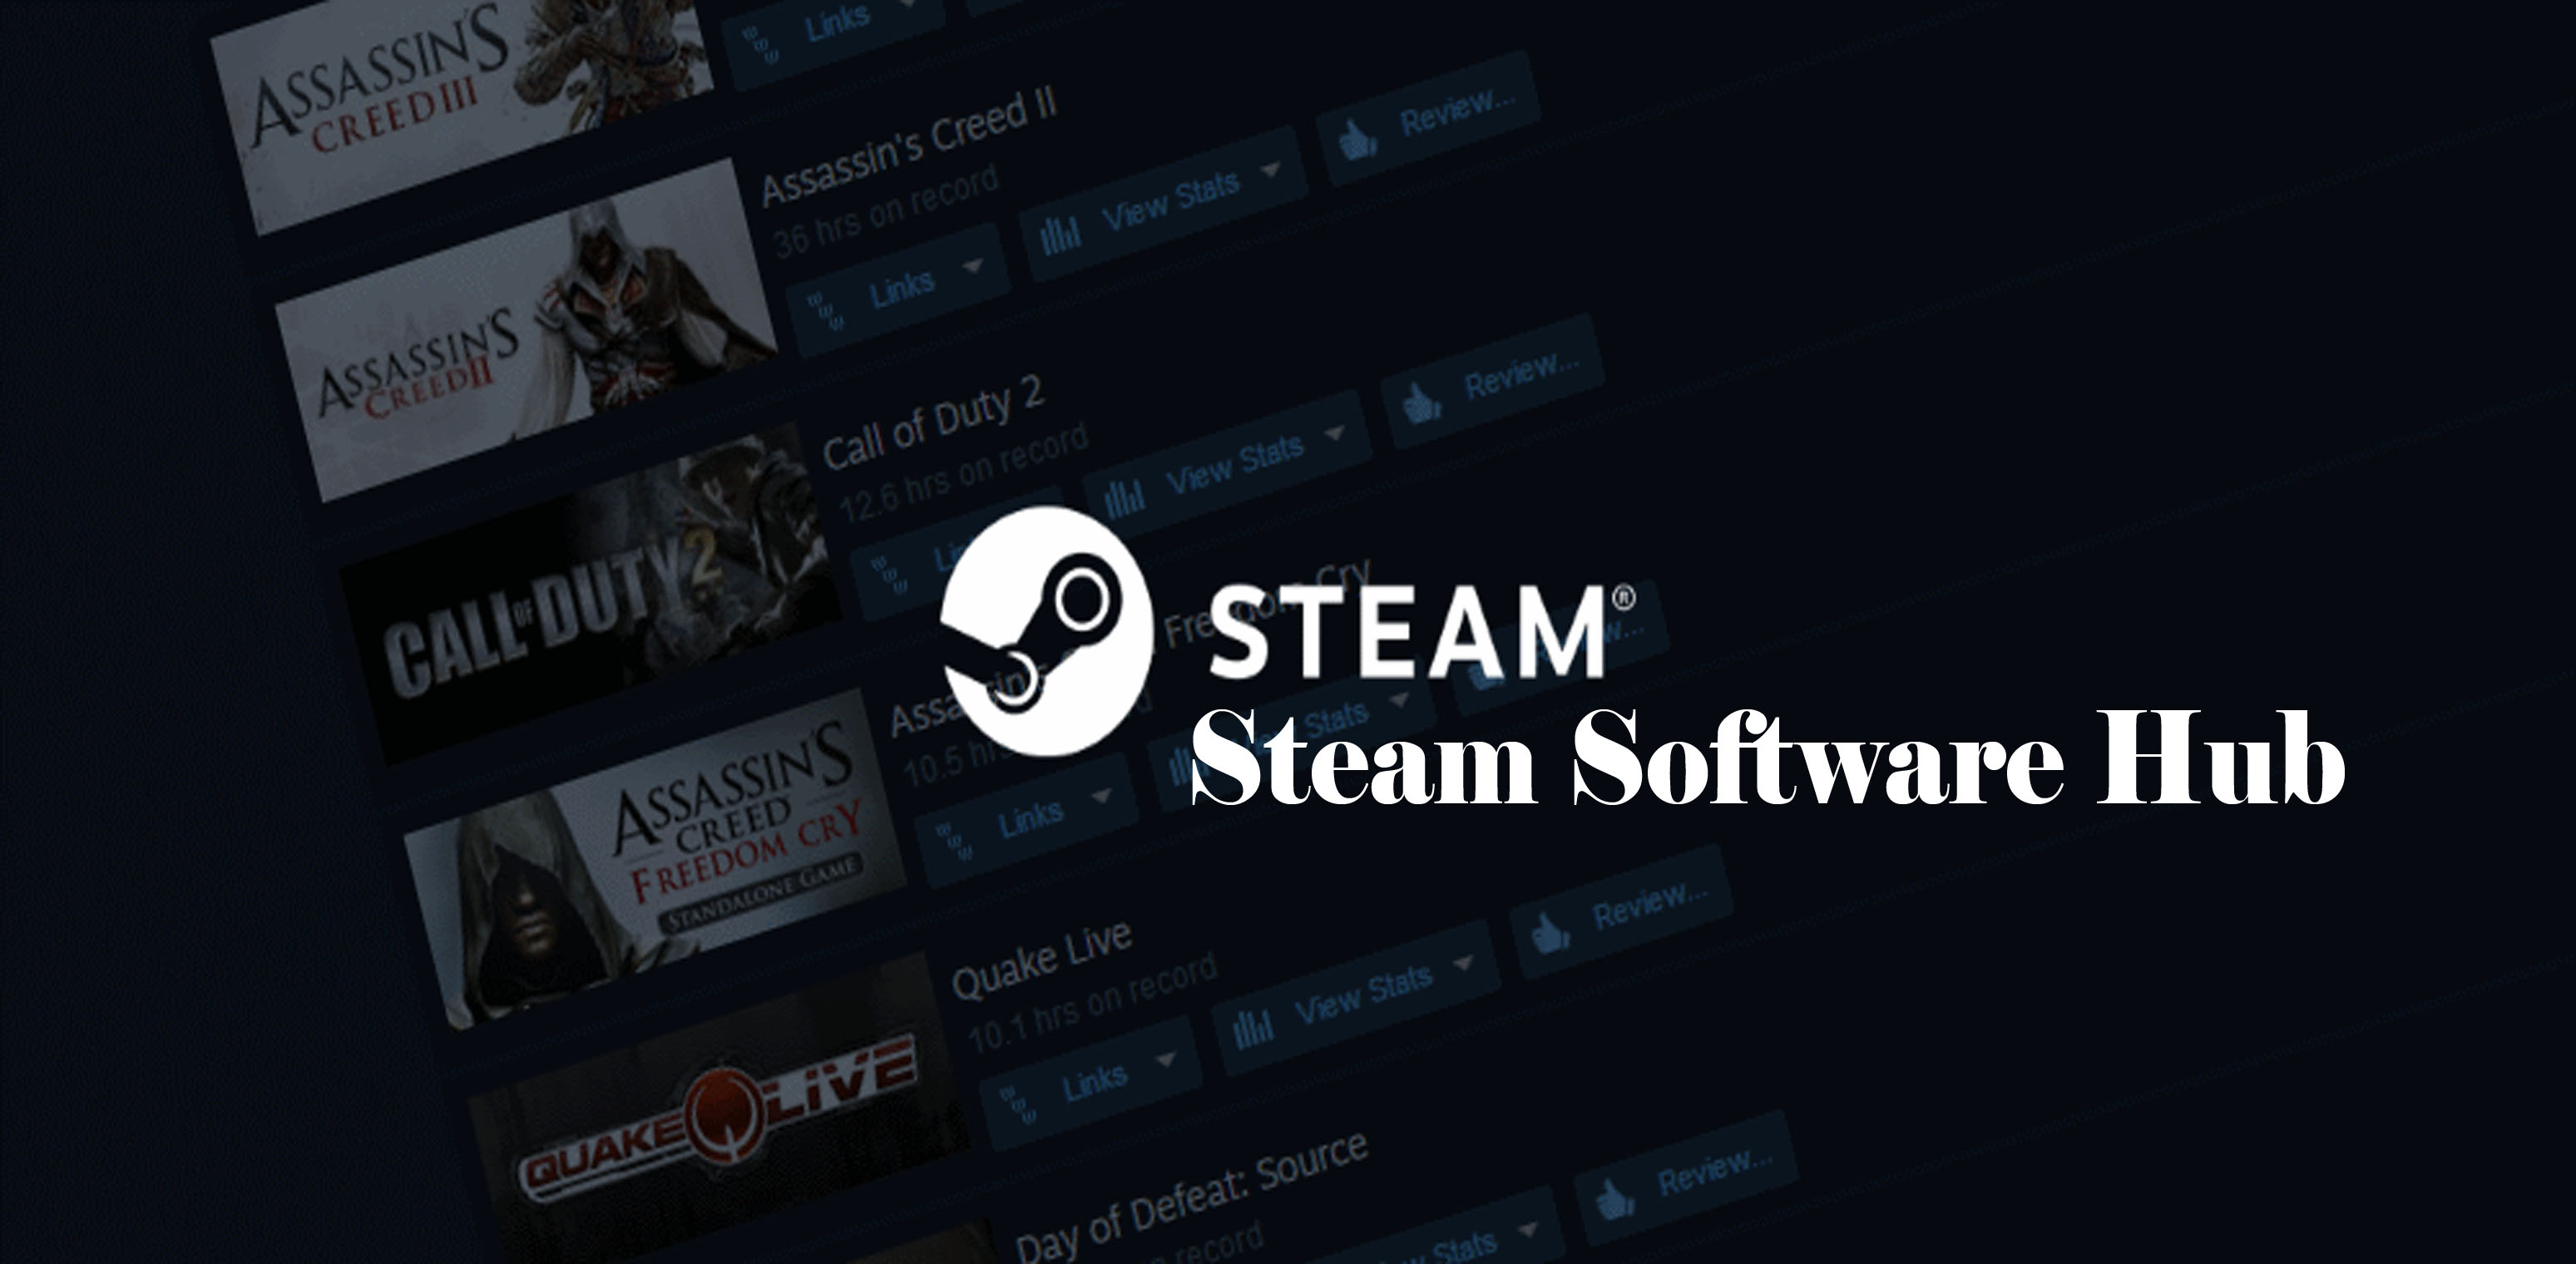 Steam Software Hub - How to Buy Software on Steam